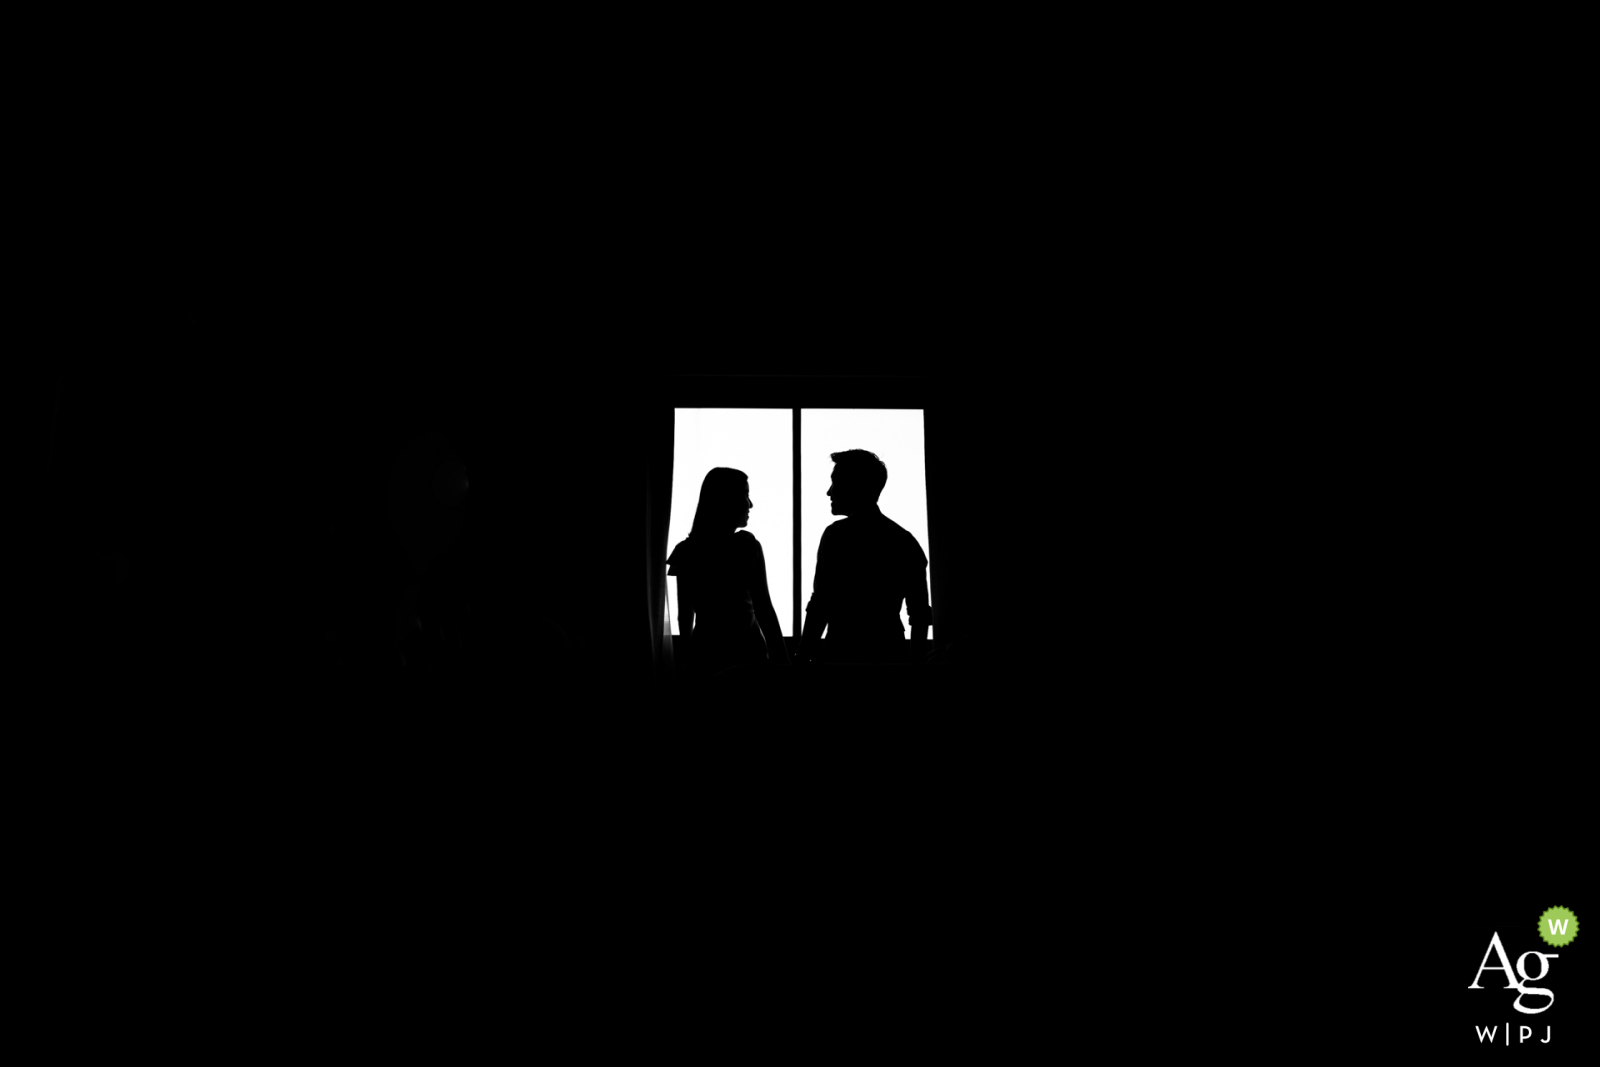 Samutprakarn black and white wedding portrait in a dark room against a window with a strong silhouette